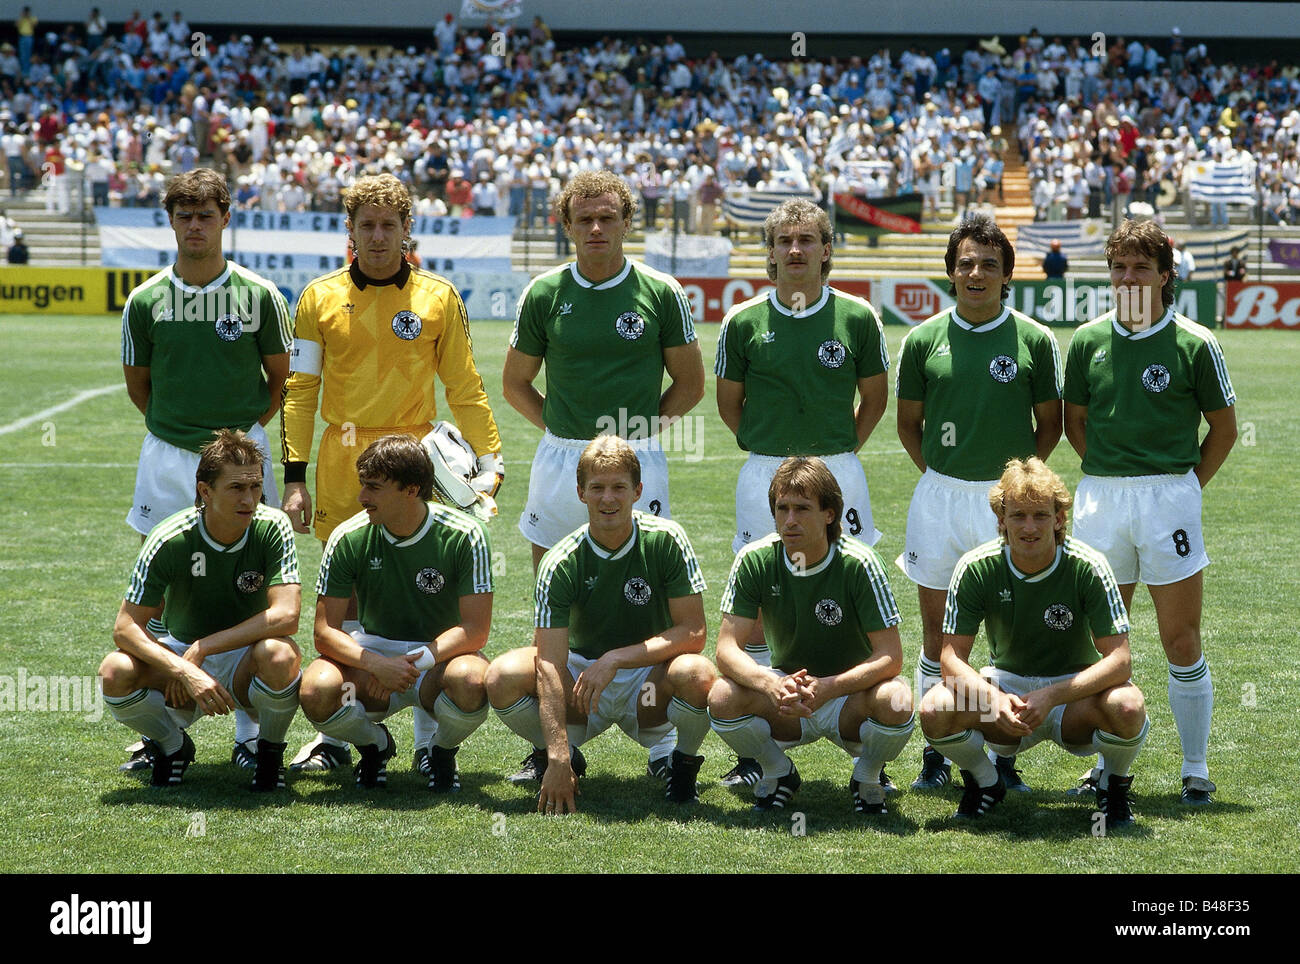 2f4ea0bde 1986 World Cup Stock Photos   1986 World Cup Stock Images - Alamy